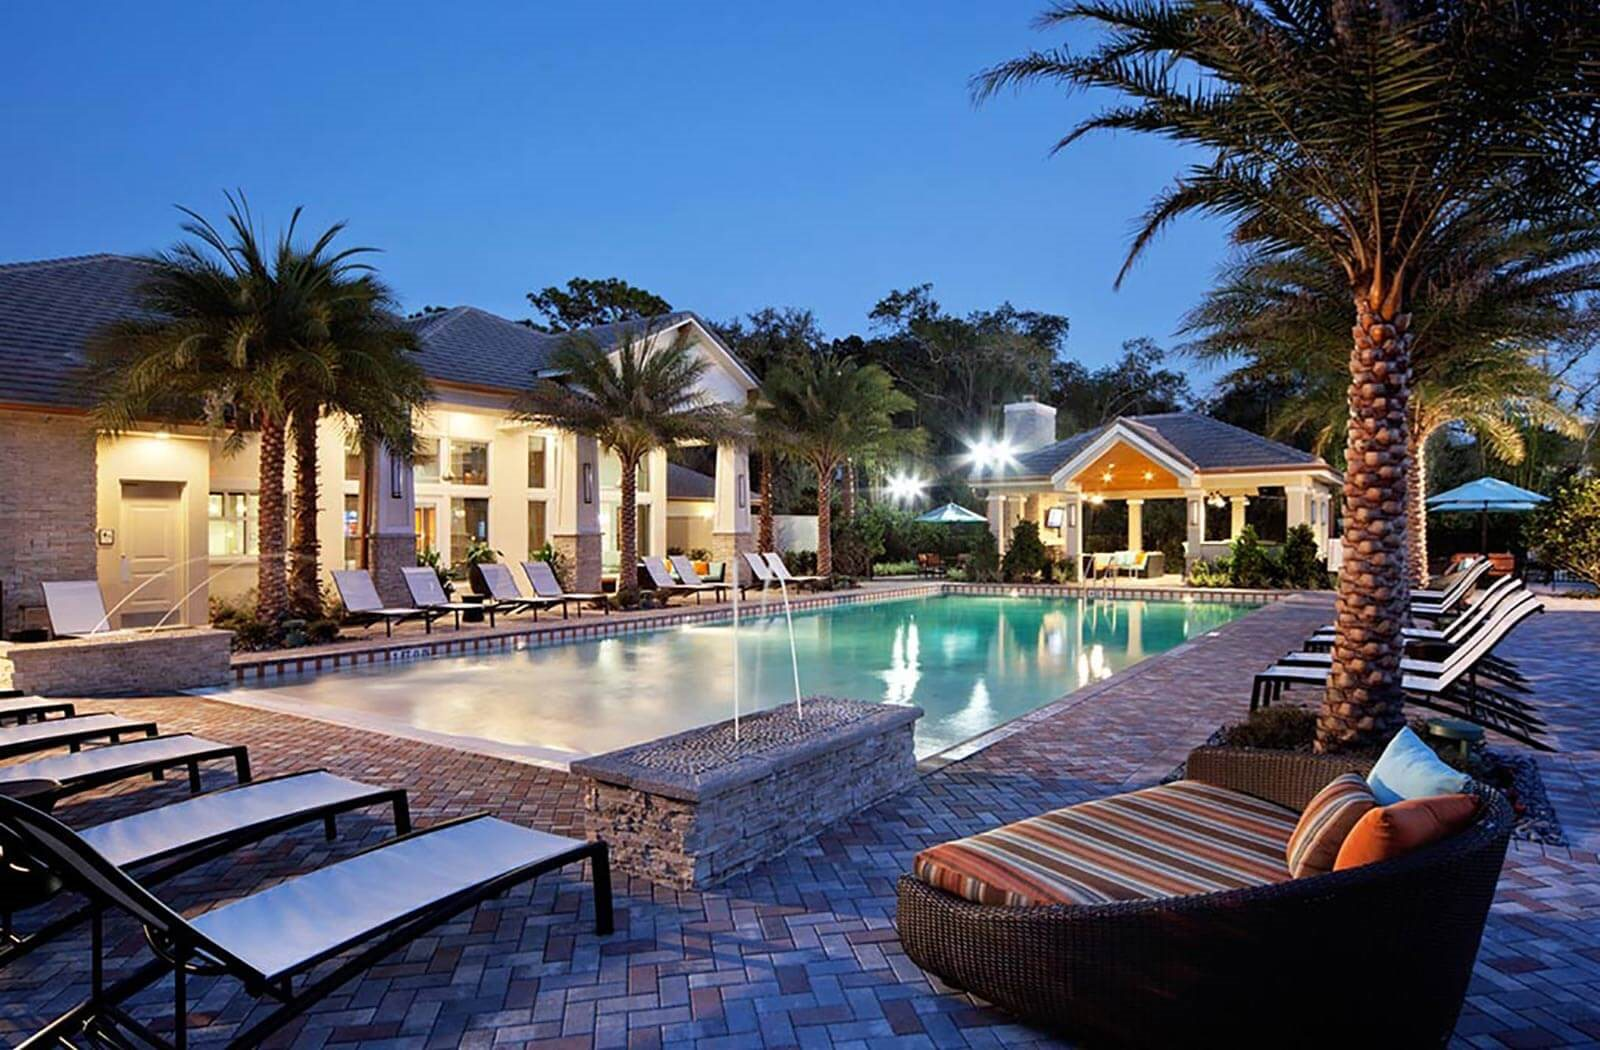 Heated Salt Water Pool with Beach Entry at Altis at Grand Cypress, Lutz, Florida